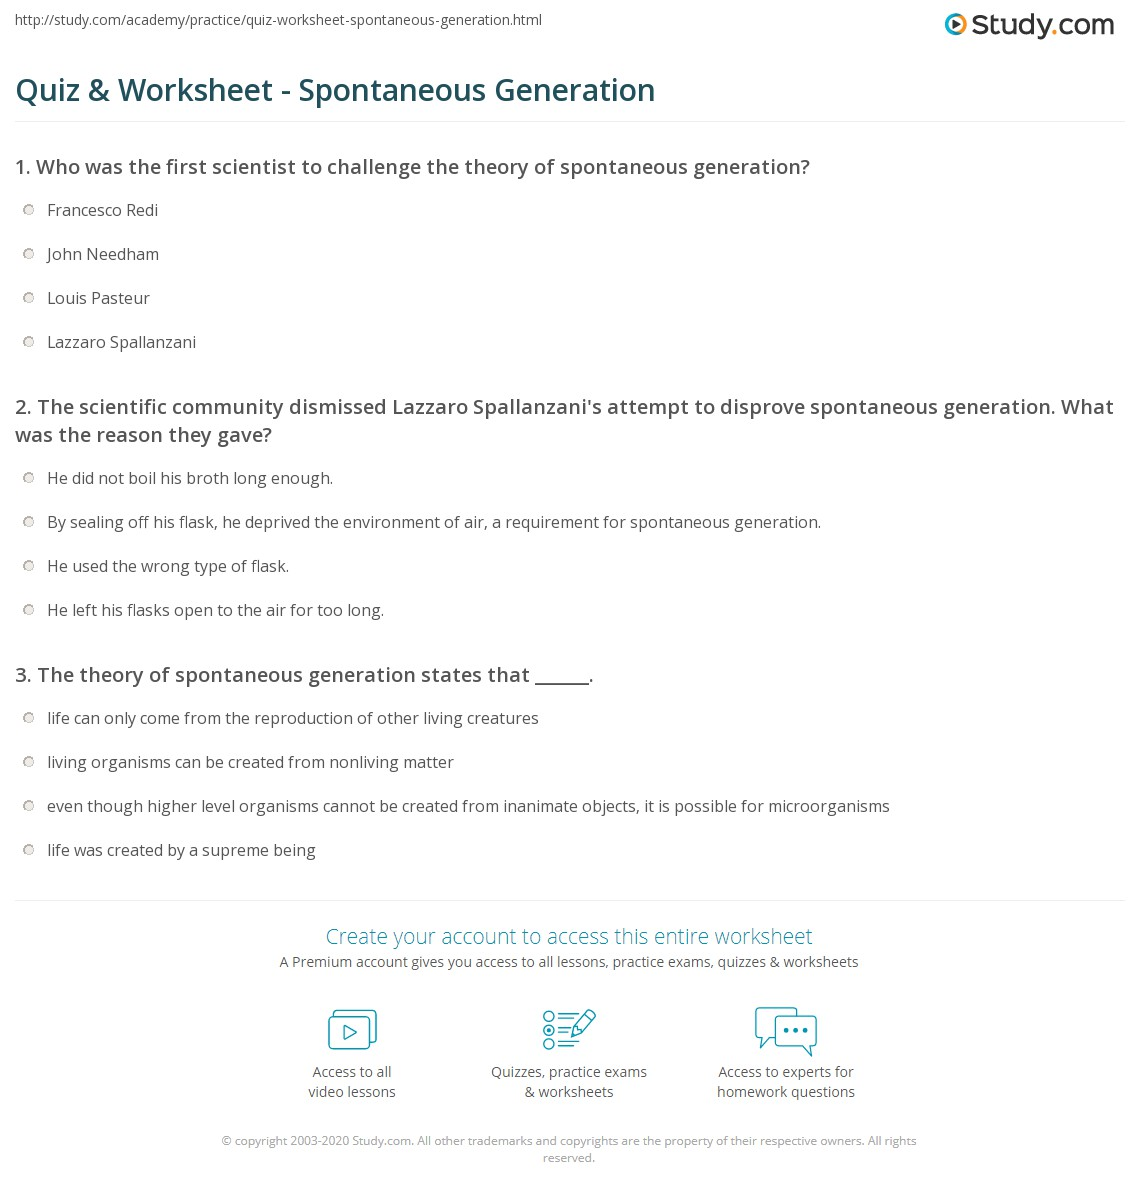 Aldiablosus  Winning Quiz Amp Worksheet  Spontaneous Generation  Studycom With Remarkable Print Spontaneous Generation Definition Theory Amp Examples Worksheet With Endearing Worksheet Online Also Community Helpers Worksheets Grade  In Addition Ratio Worksheets Printable And Maths Worksheet For Year  As Well As Decimals As Fractions Worksheet Additionally Worksheet On Capital Letters From Studycom With Aldiablosus  Remarkable Quiz Amp Worksheet  Spontaneous Generation  Studycom With Endearing Print Spontaneous Generation Definition Theory Amp Examples Worksheet And Winning Worksheet Online Also Community Helpers Worksheets Grade  In Addition Ratio Worksheets Printable From Studycom